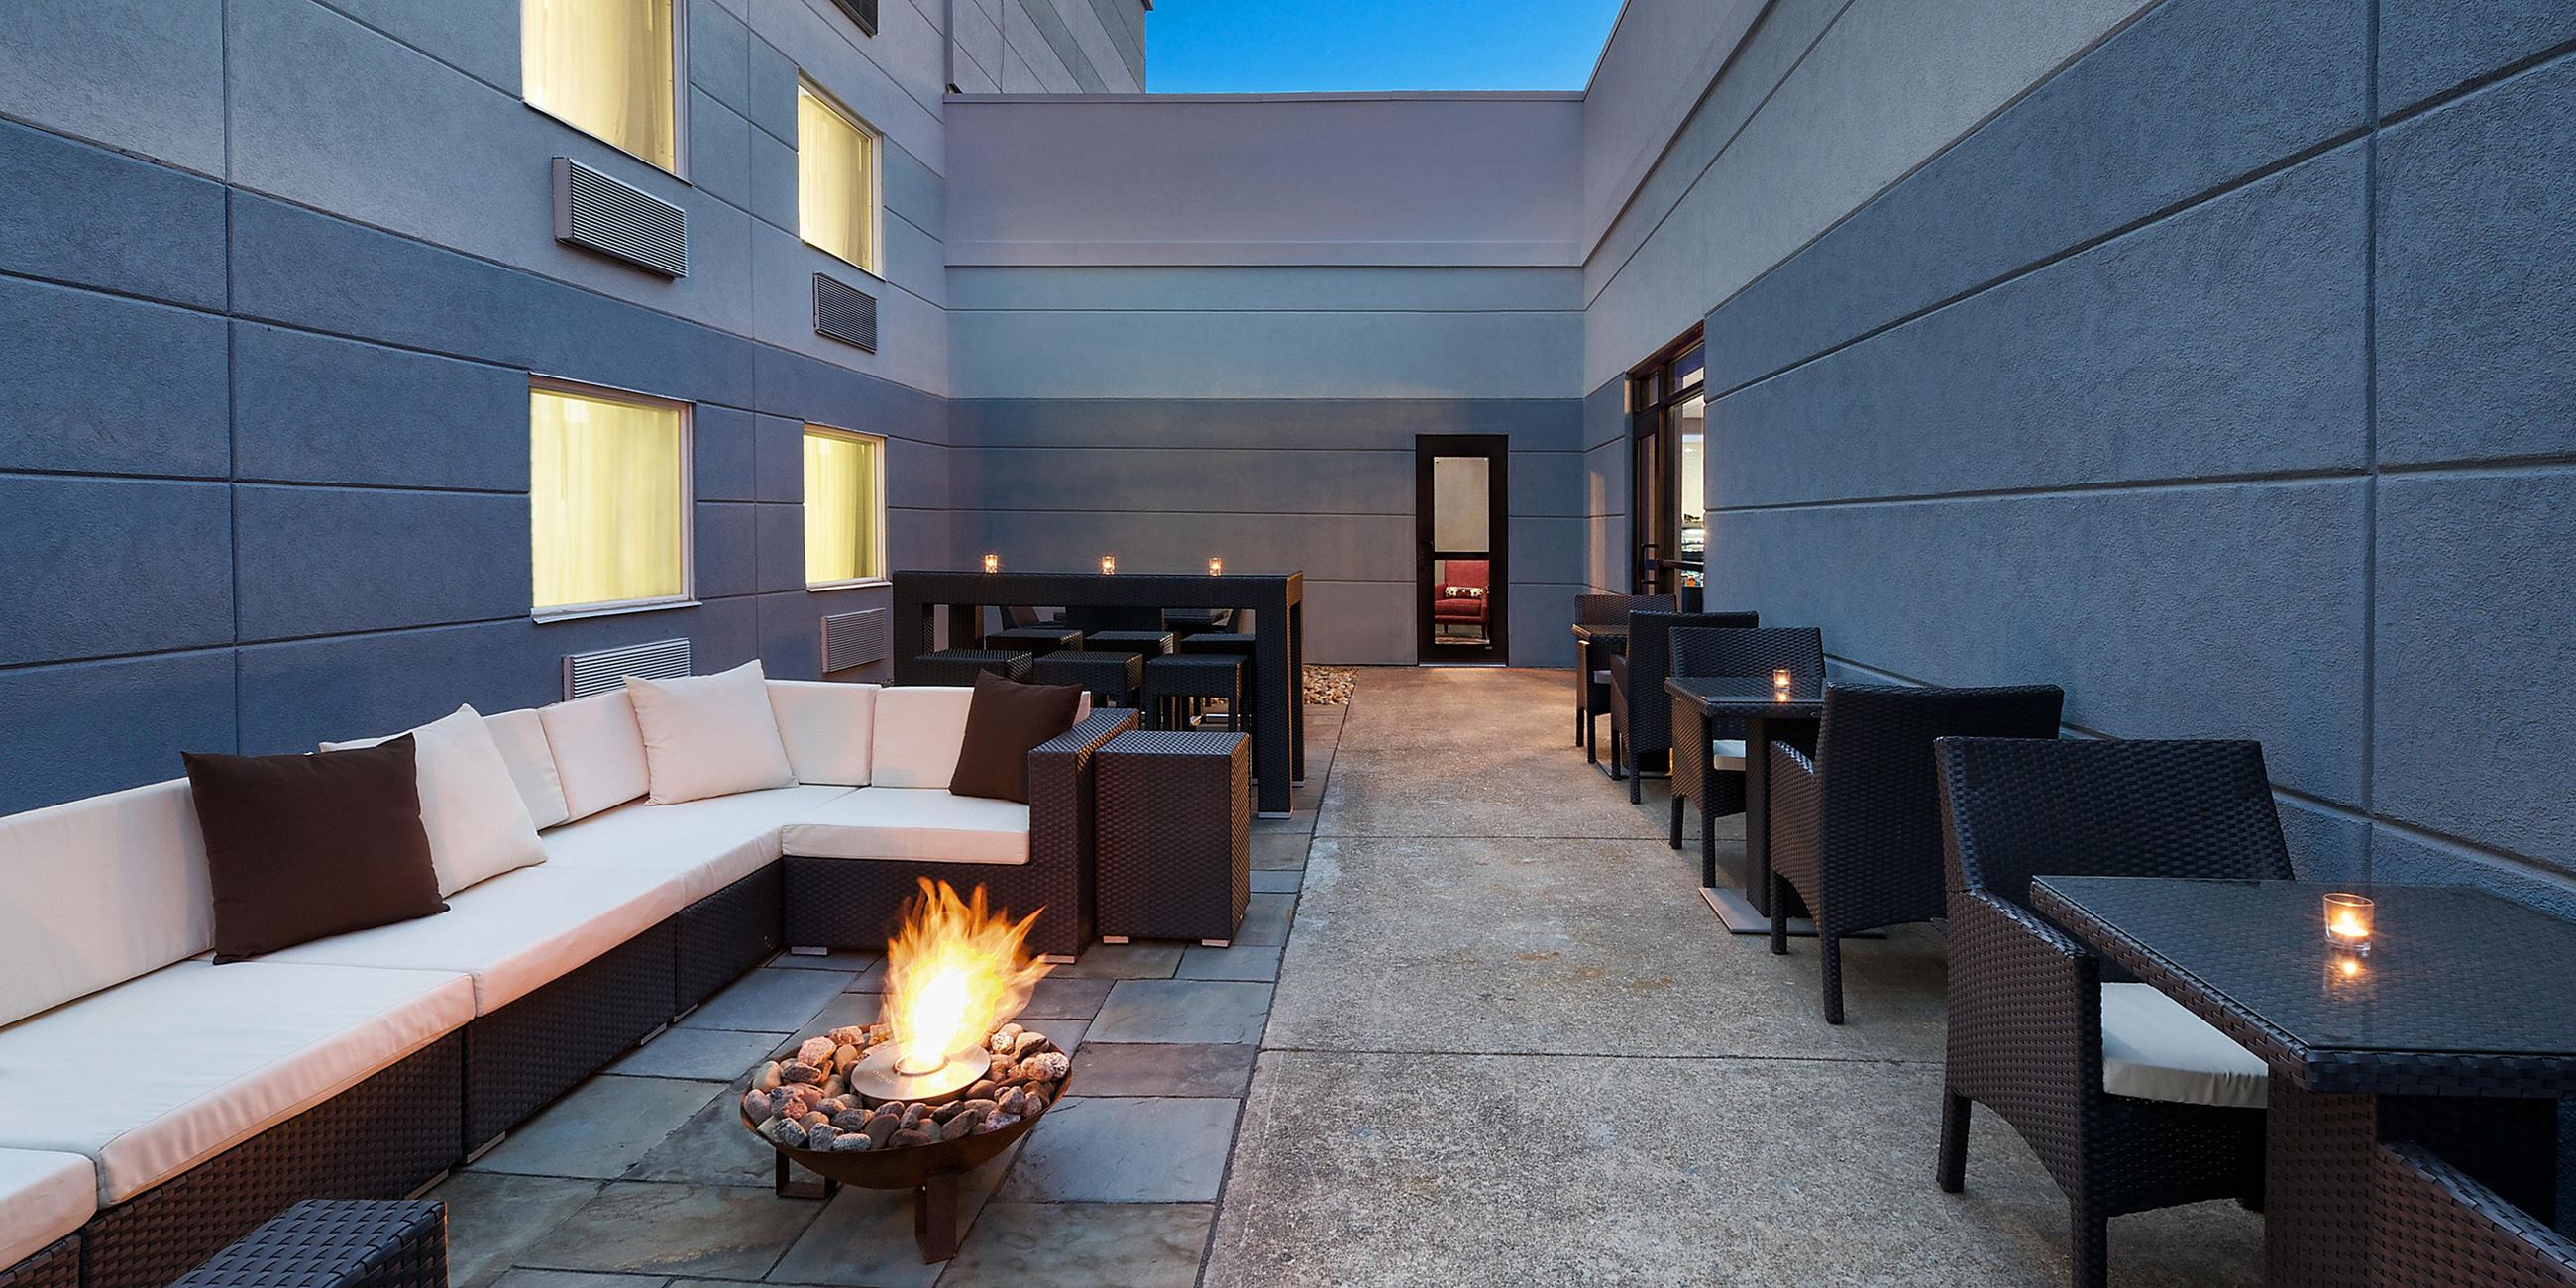 Hotel INDIGO Beachwood Patio with firepit